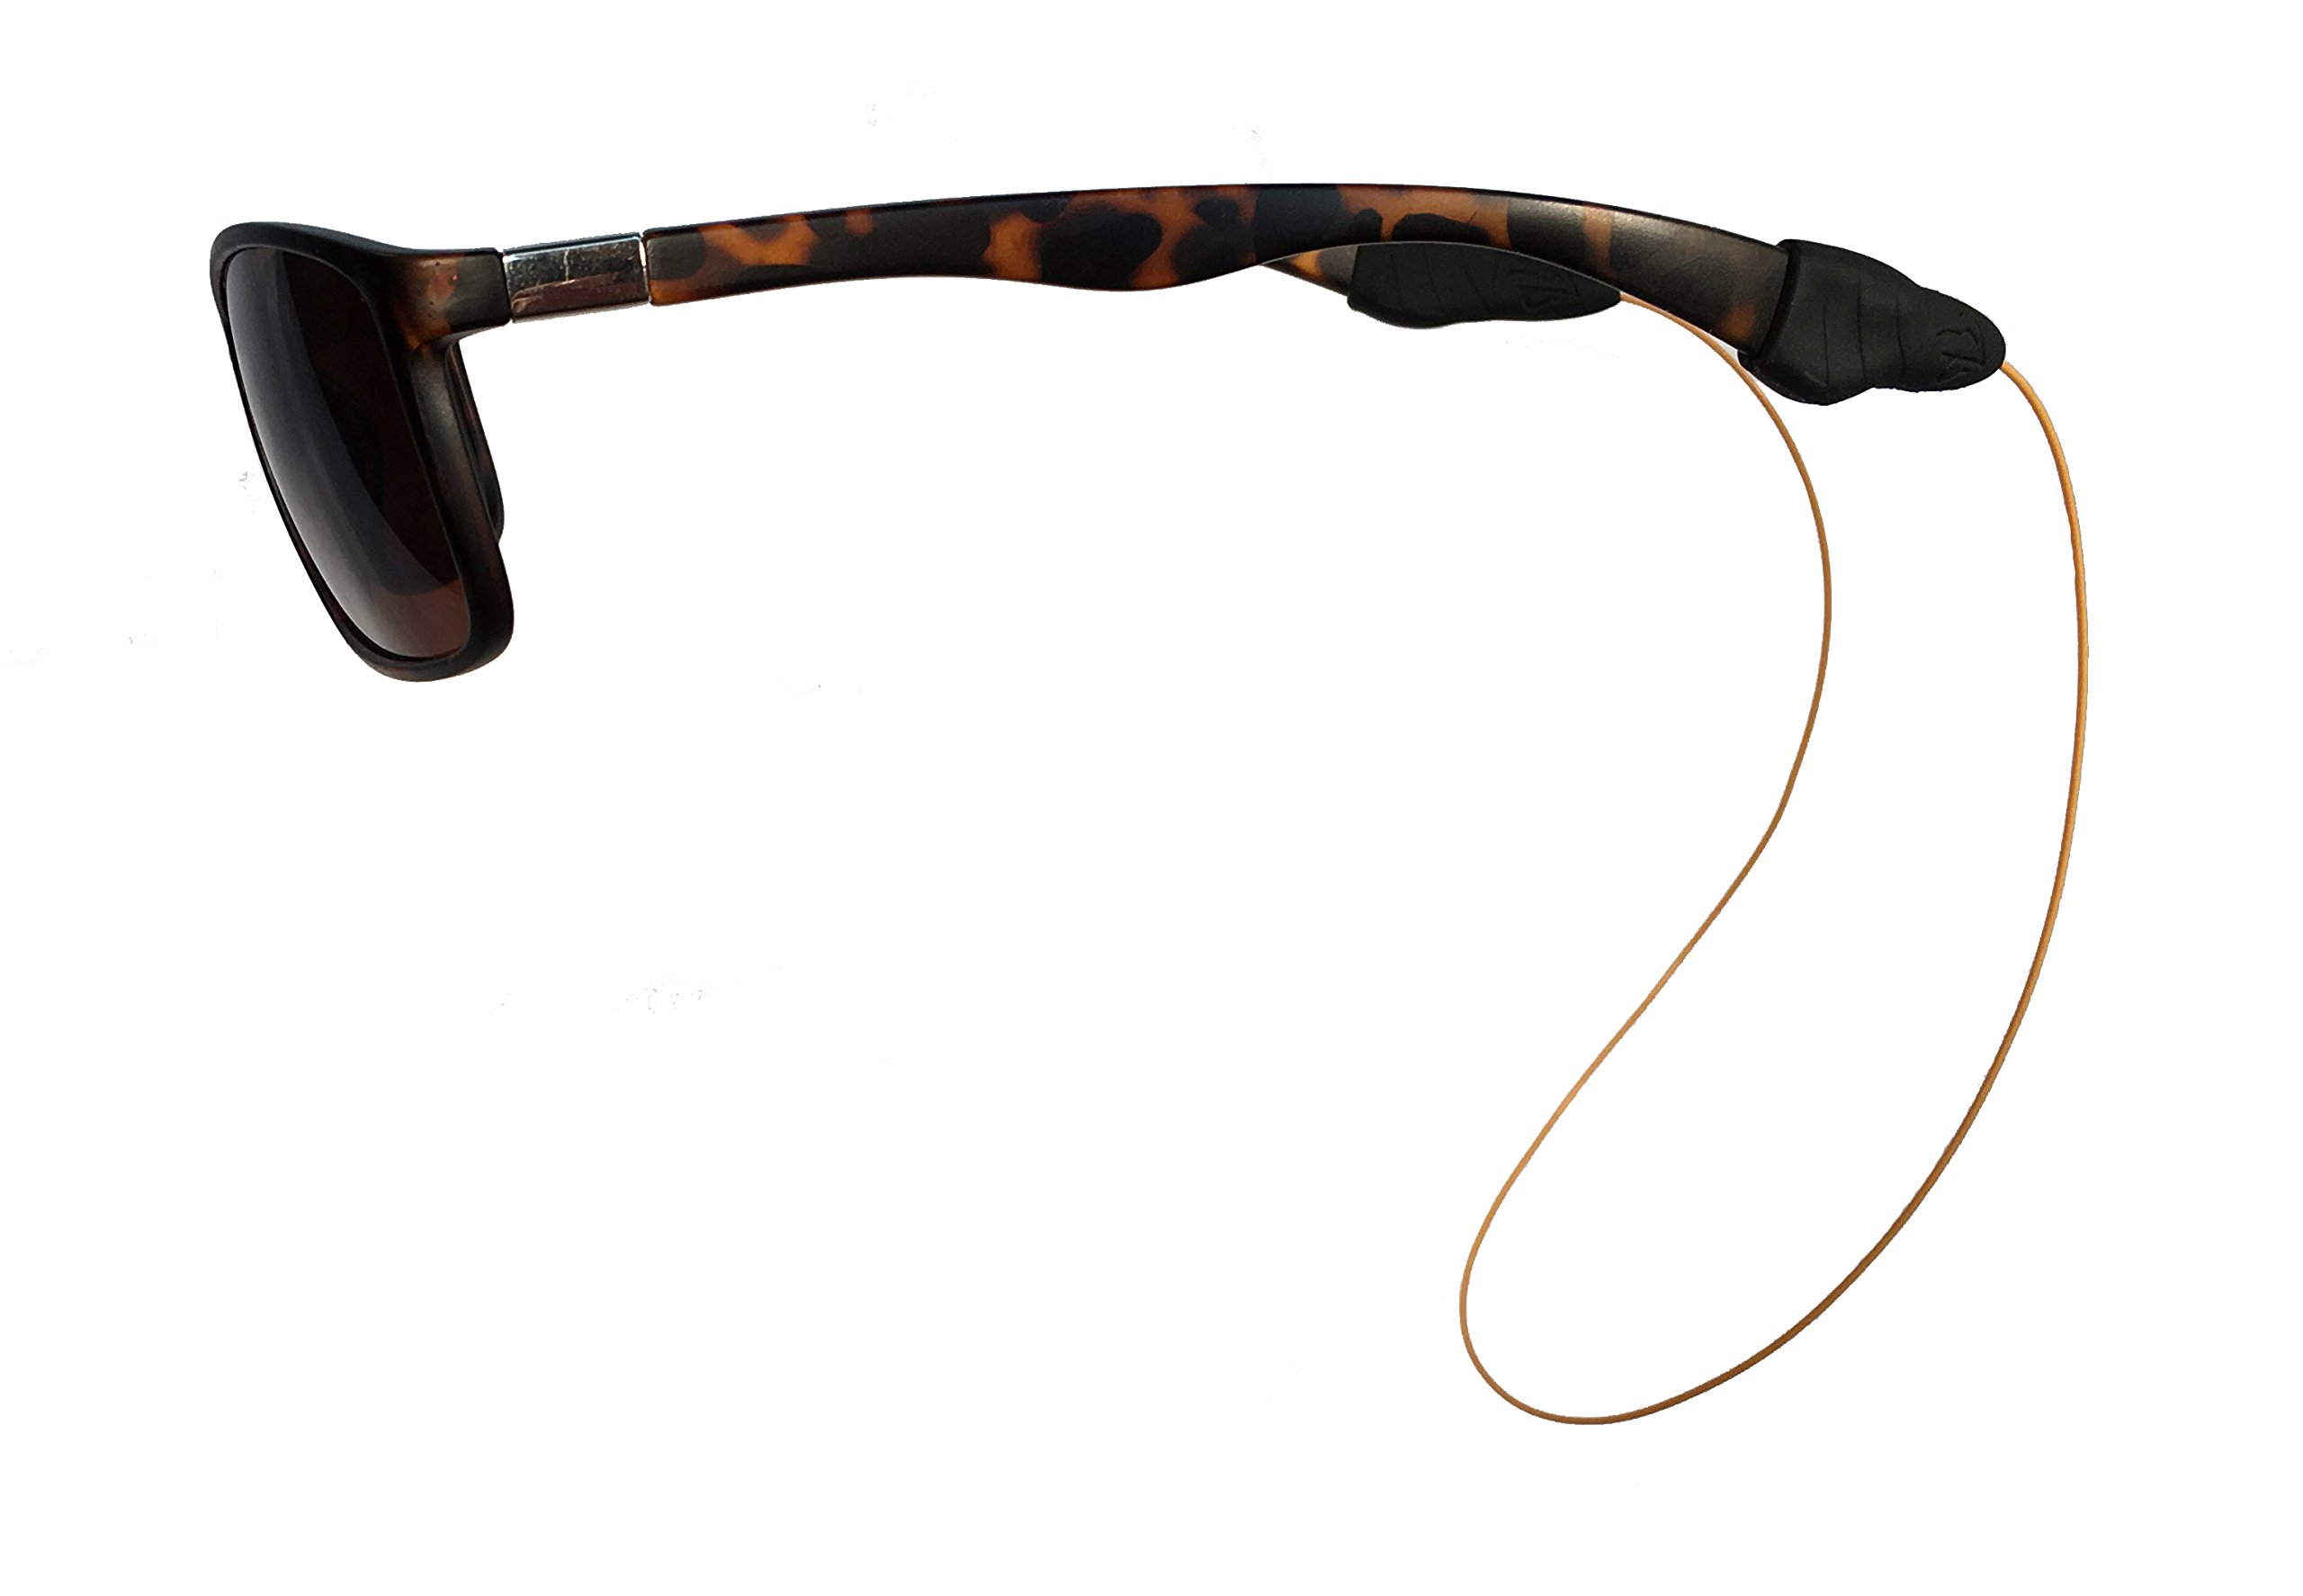 Fly Ties - Fly Fishing Line Sunglass Retainer/Strap - Light Weight, Waterproof, Multiply Color and Size Options (Small, Burnt Orange)